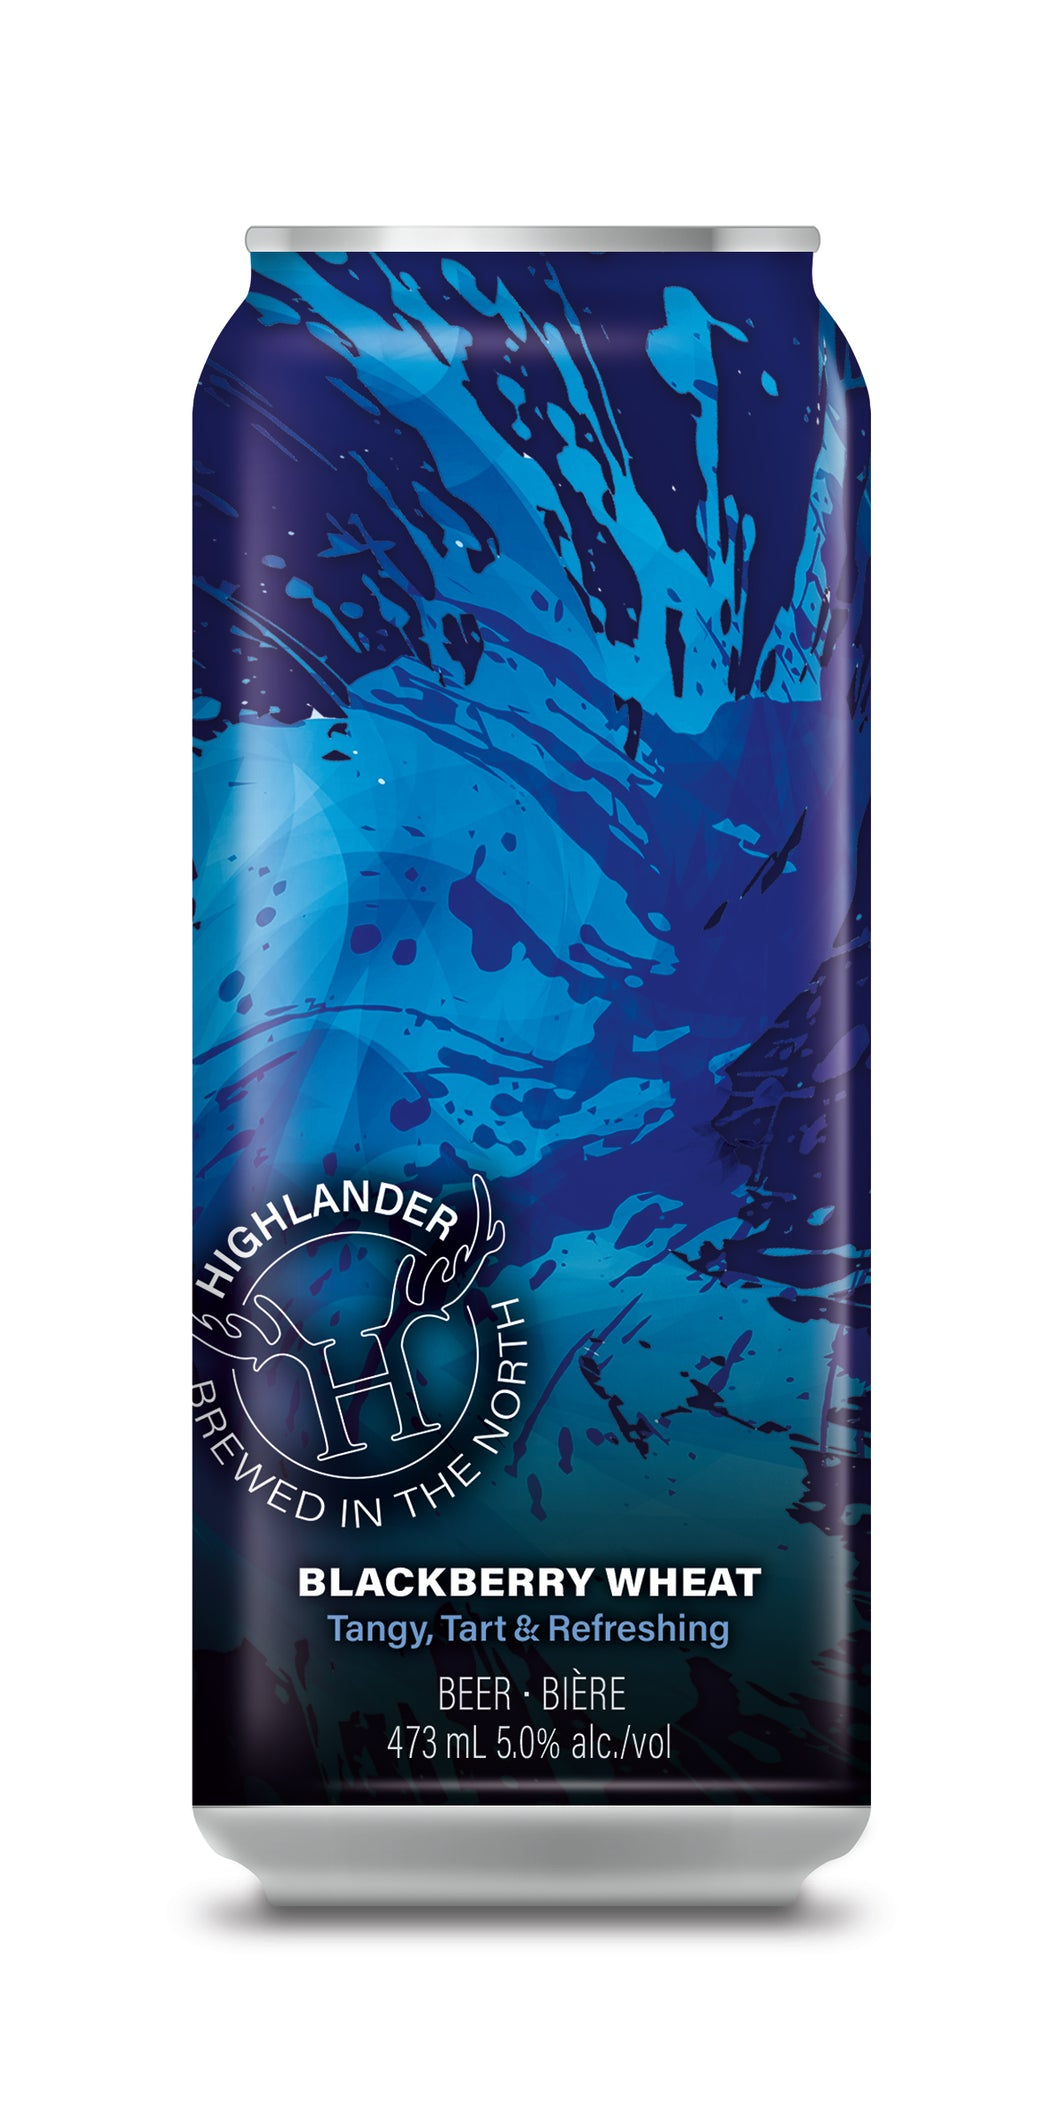 24 Special Highlander Brew Co. Blackberry Wheat